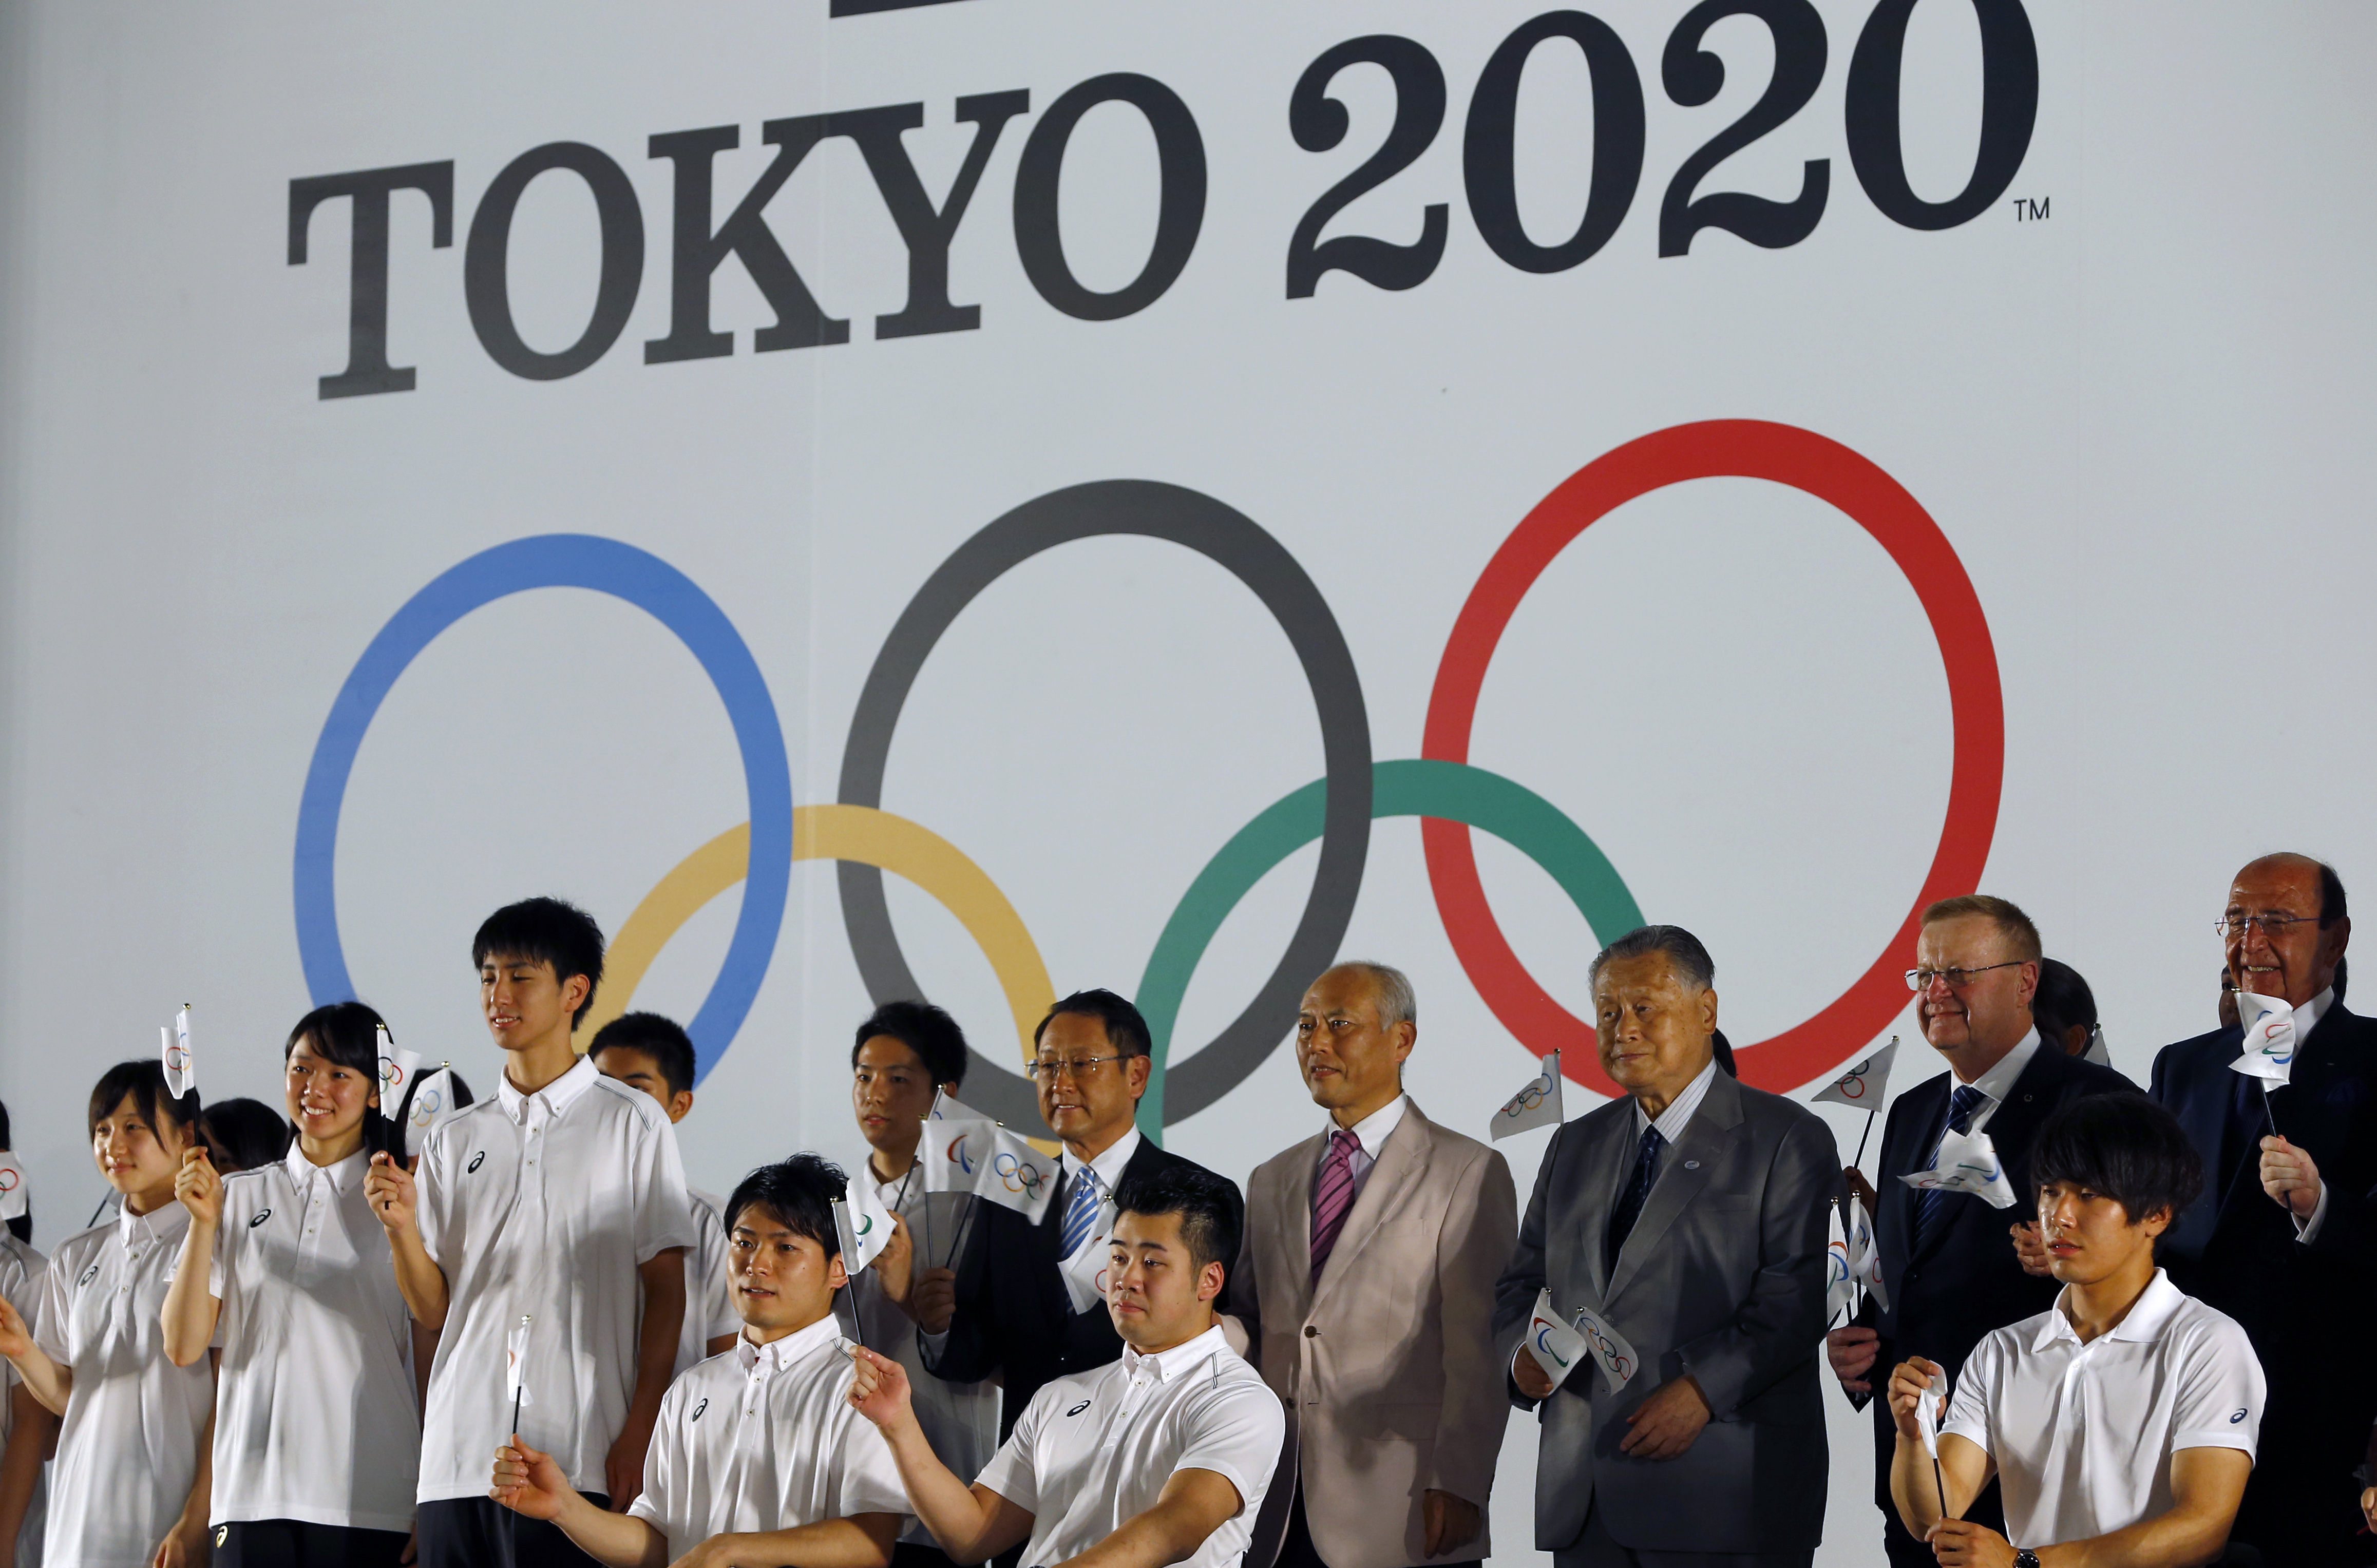 International Olympic Committee Vice President John Coates, second right, and Tokyo 2020 Summer Olympic Organizing Committee President Yoshiro Mori third right, pose for photographers in front of official emblems of the Tokyo 2020 Olympic Games at Tokyo M